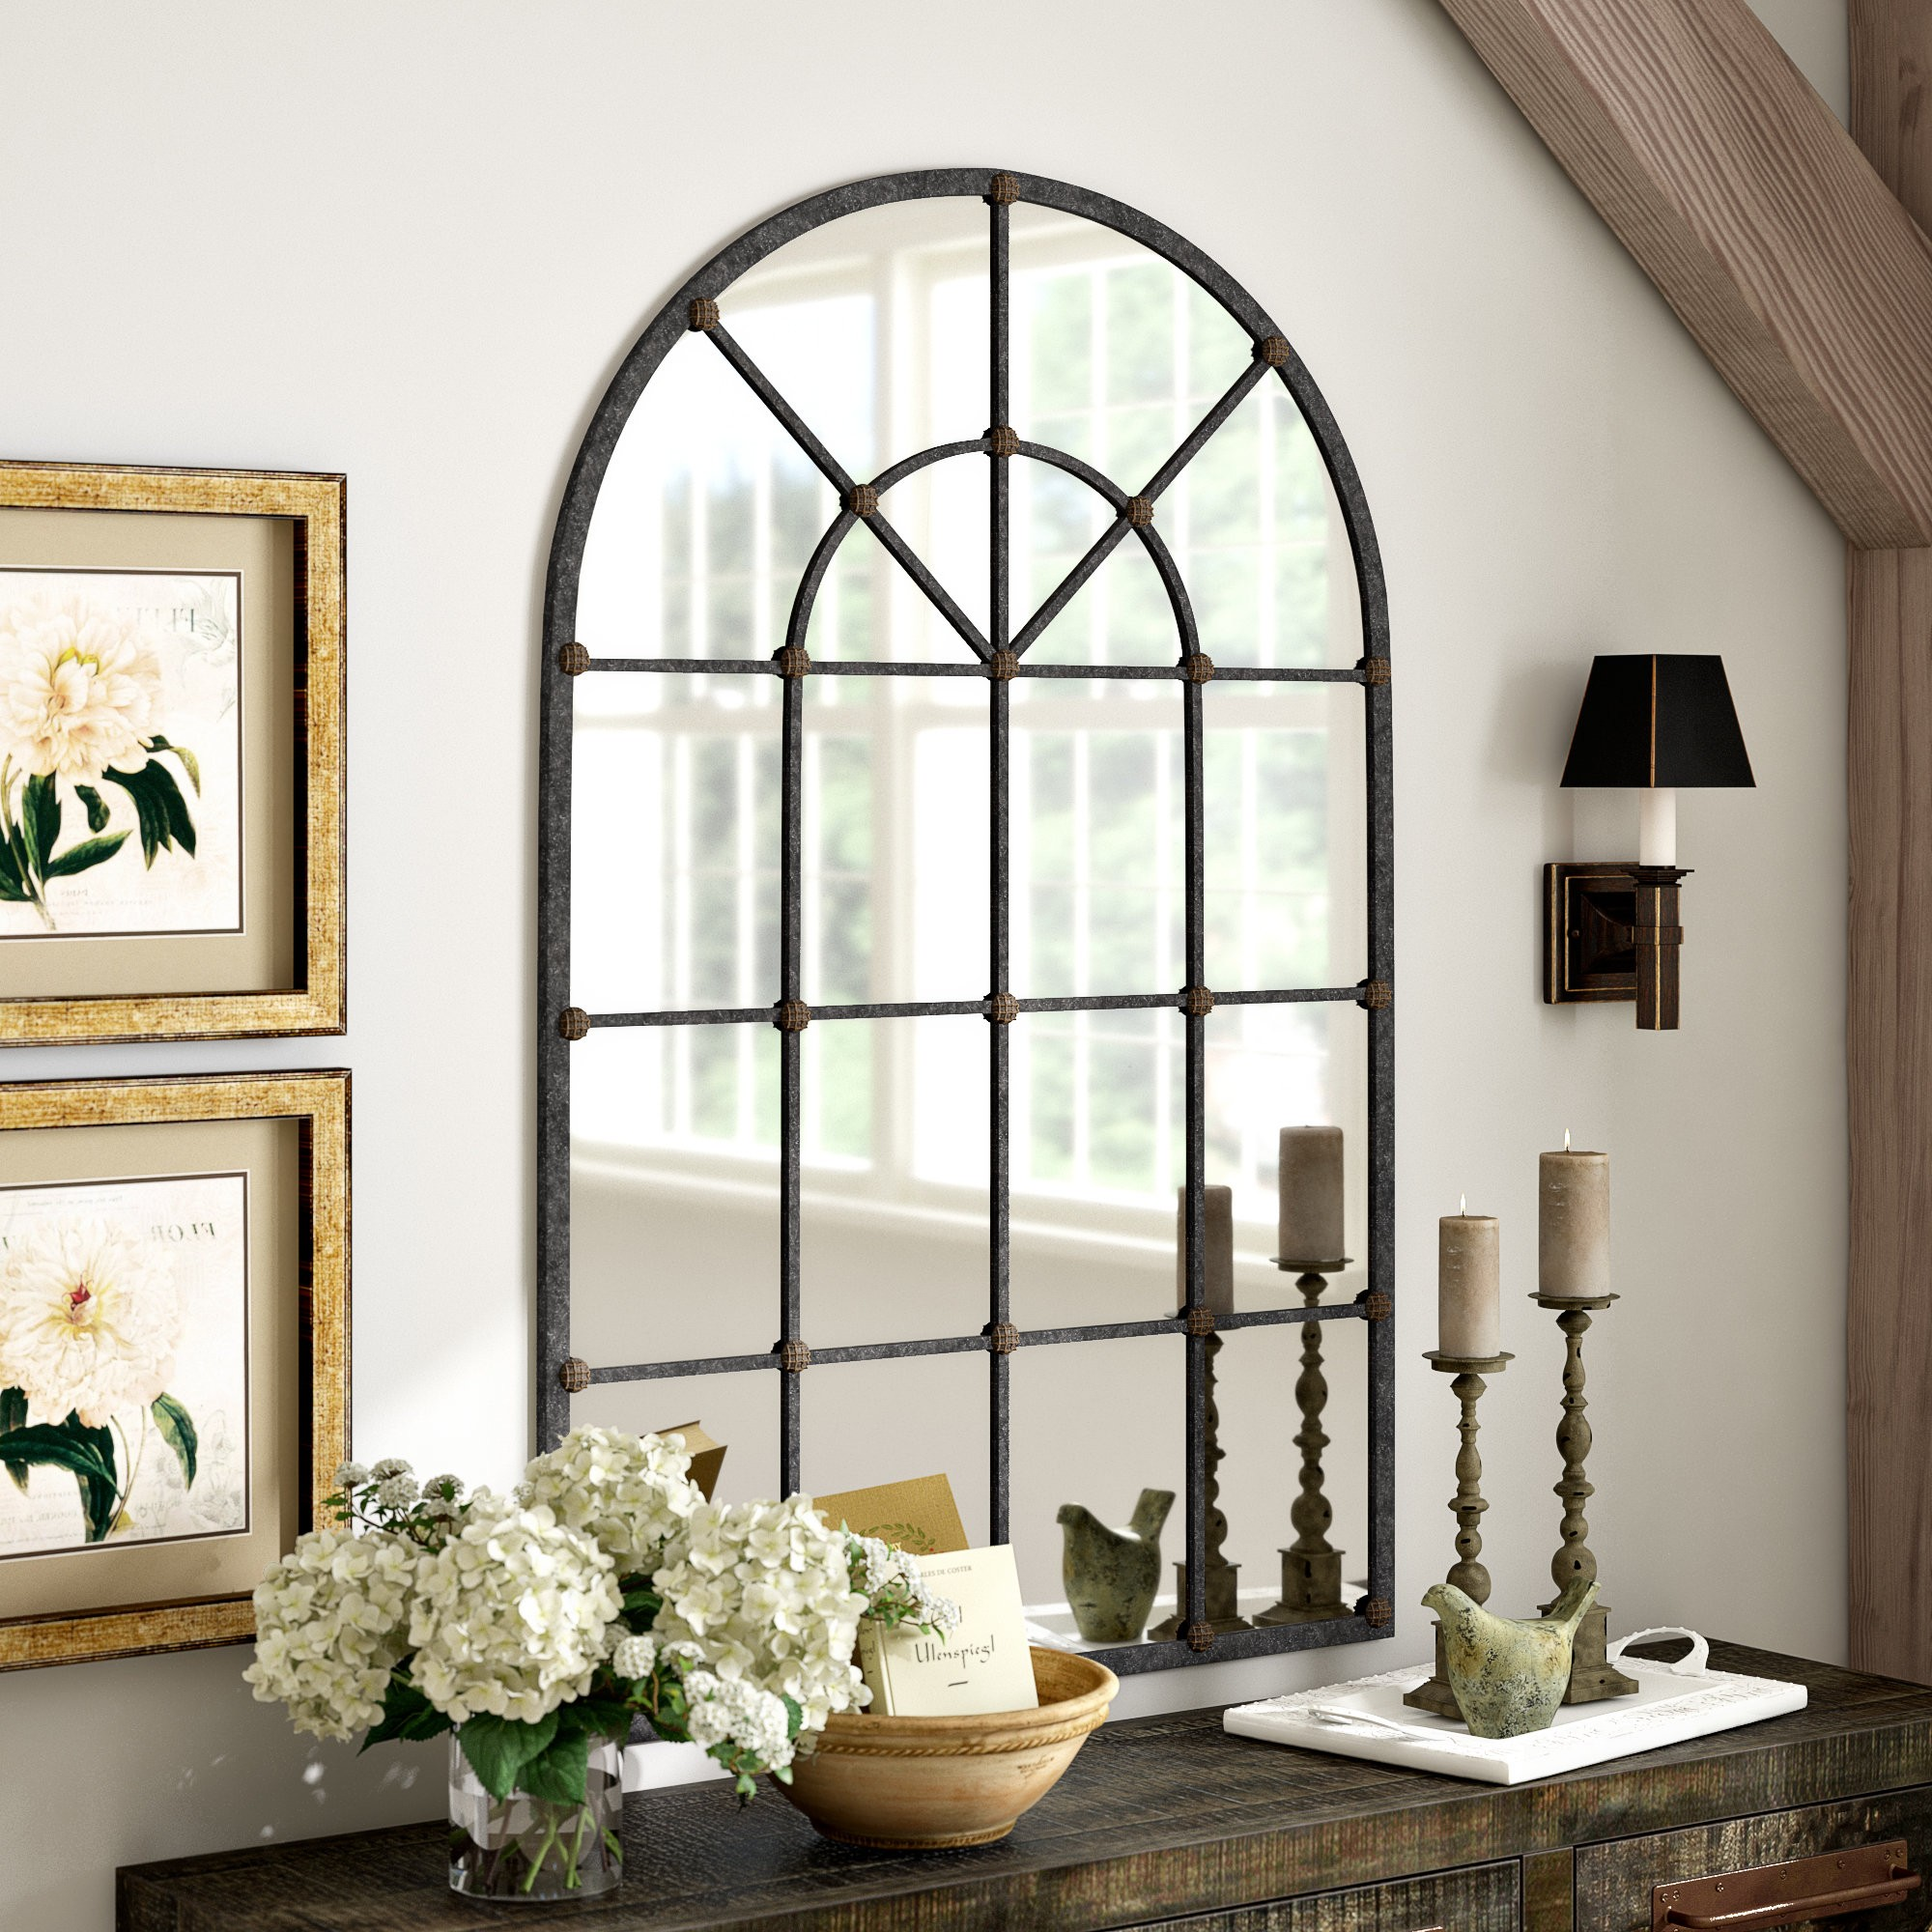 10 Best Window Mirrors For 2021 Ideas On Foter